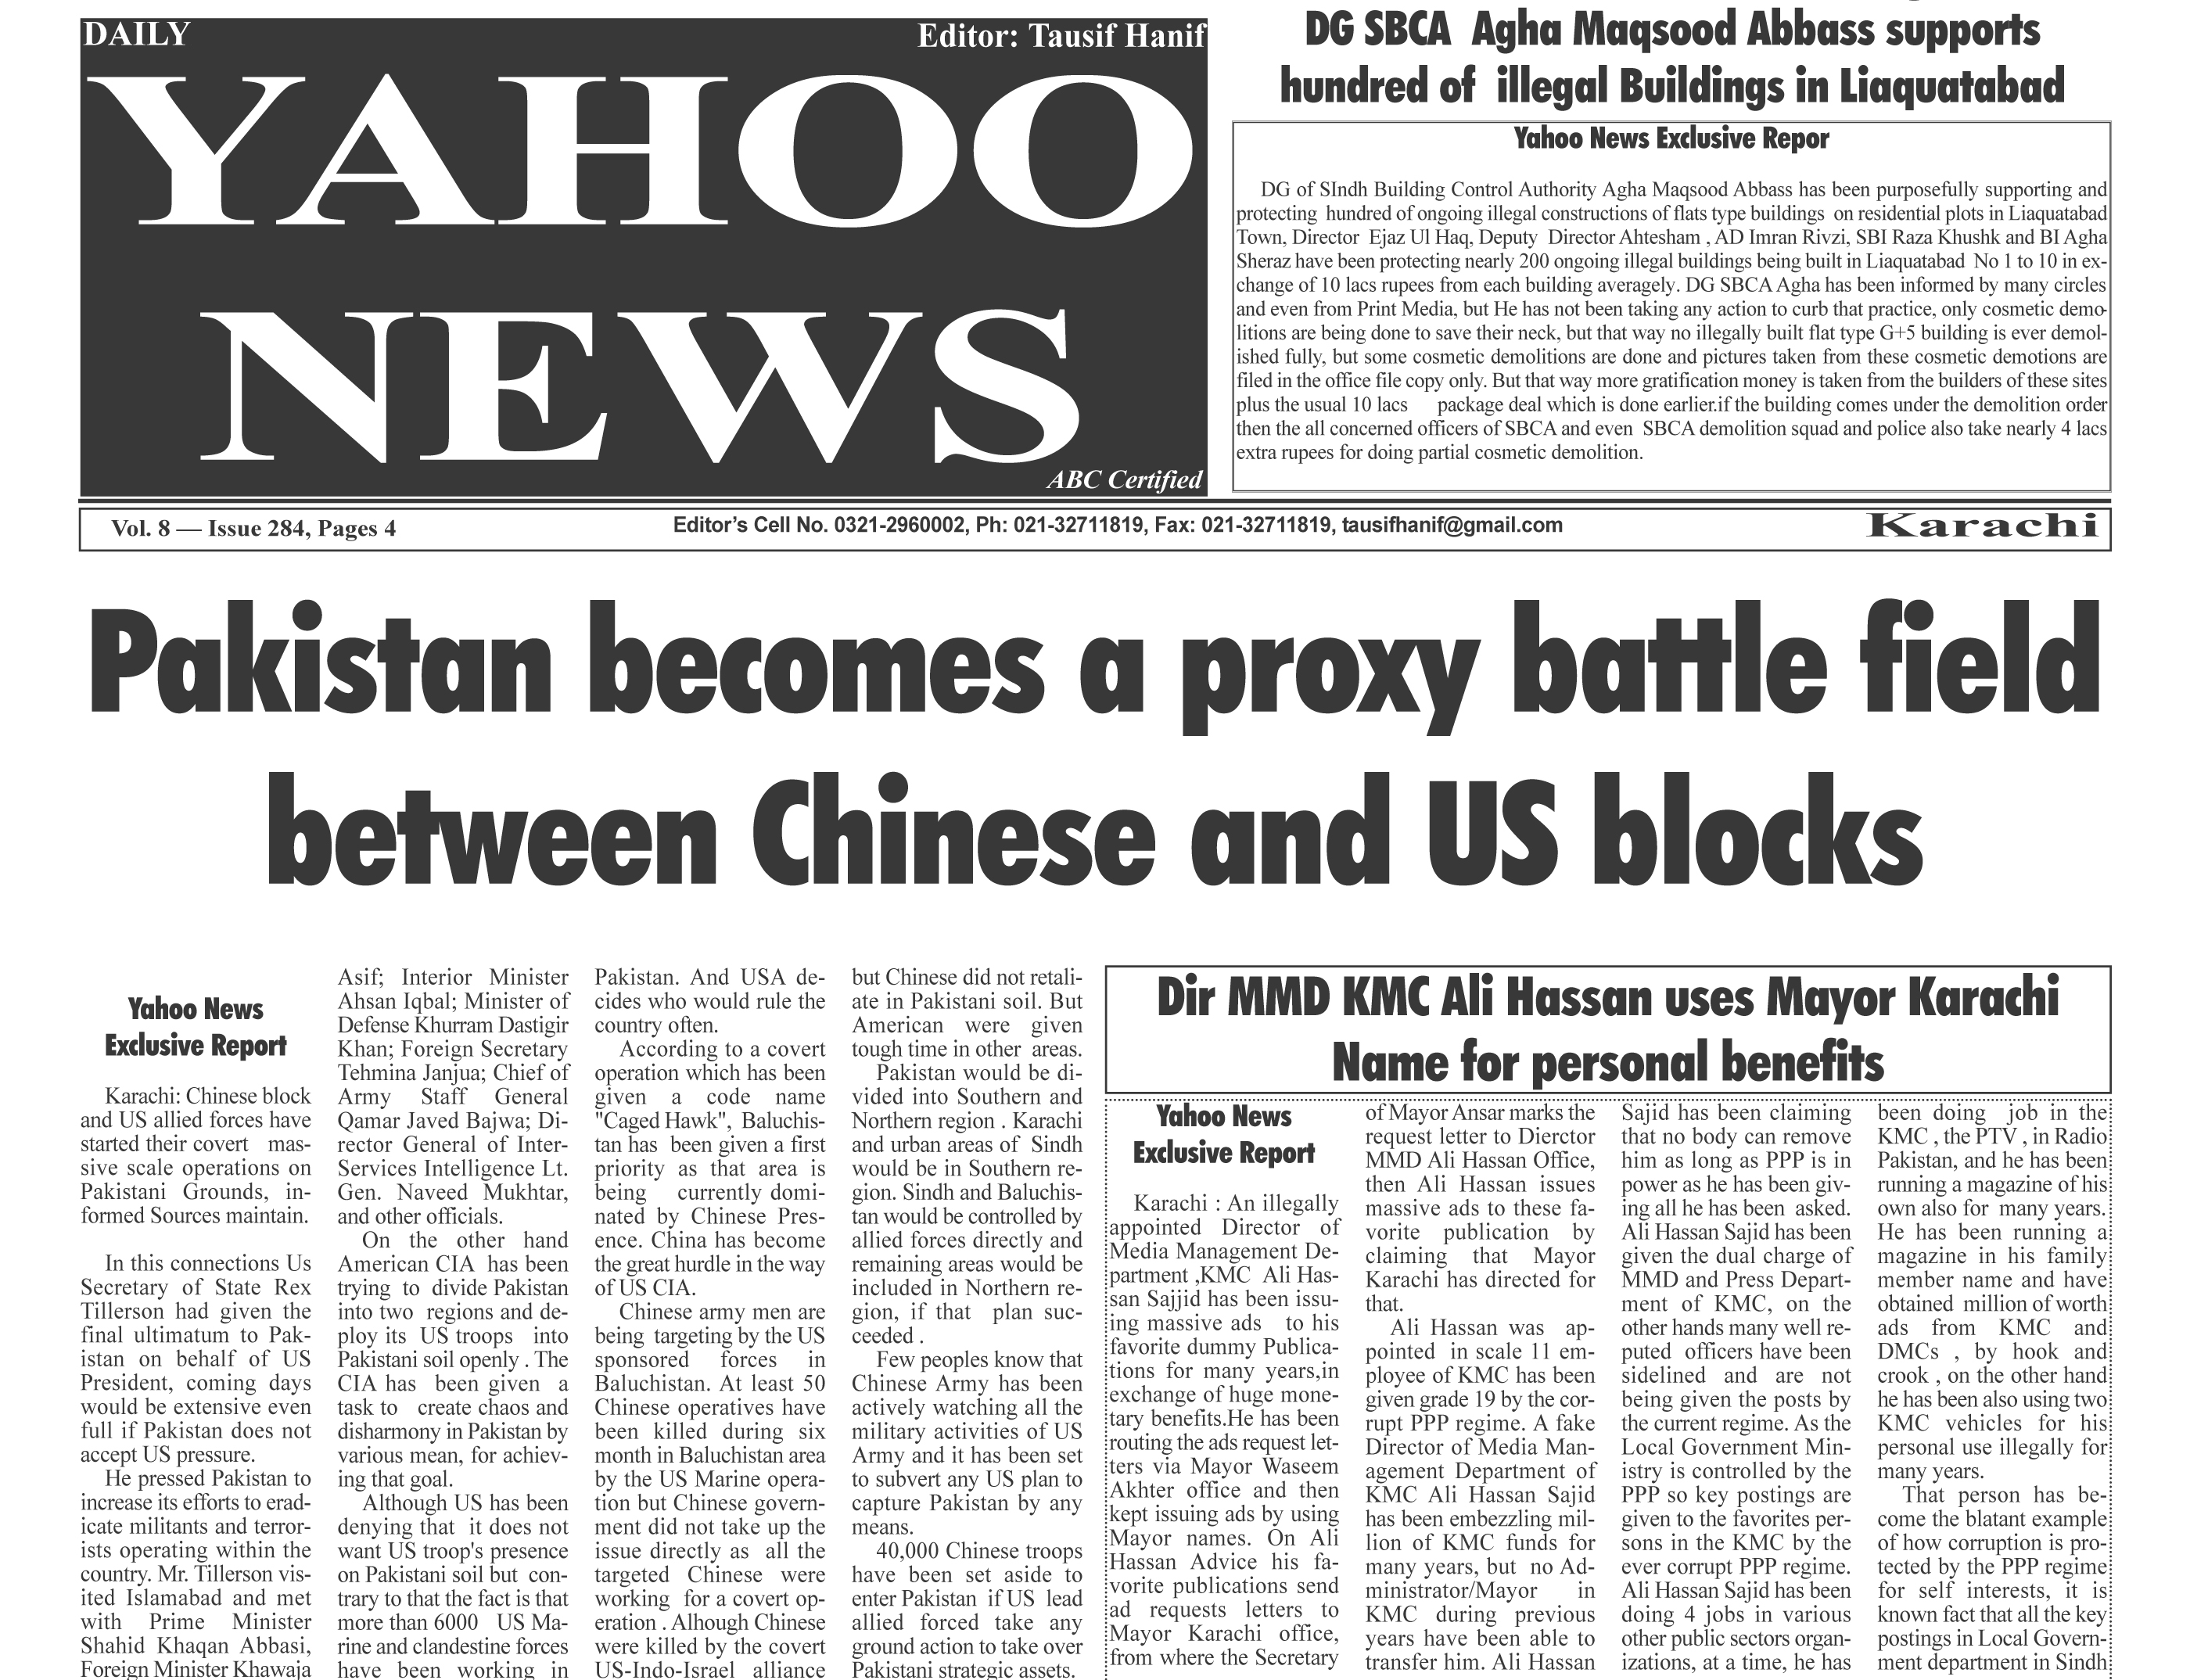 Daily Yahoo News metro Edition dated 26-10-2017